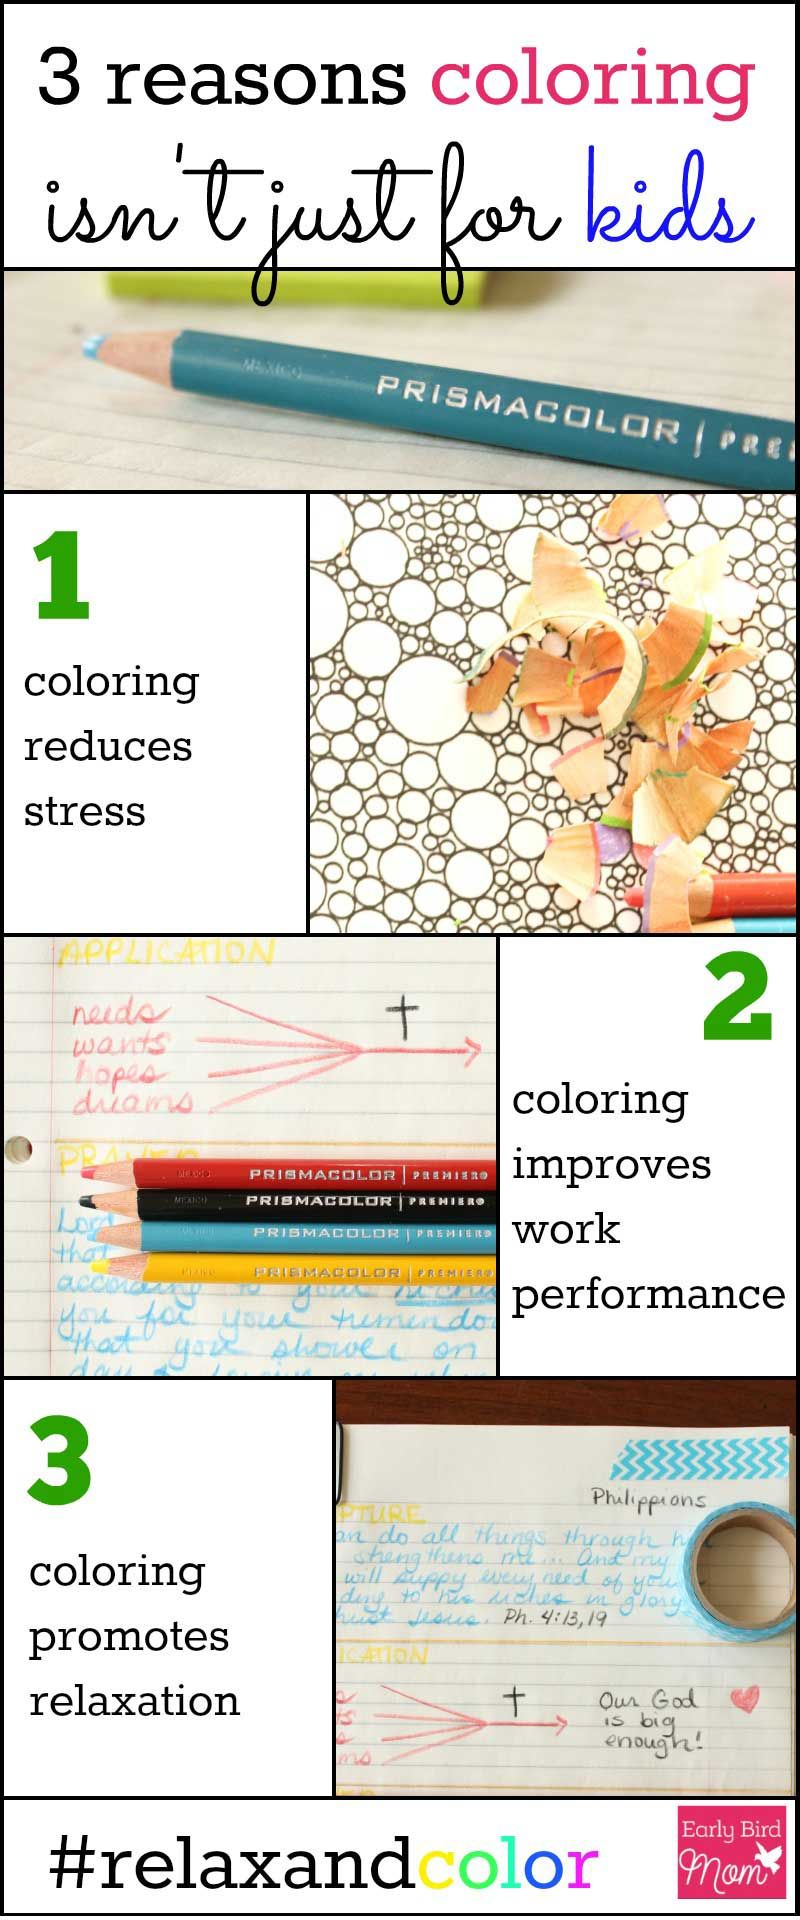 Colouring for adults benefits - You Know Coloring Is Fun But Did You Know It Also Has Other Benefits